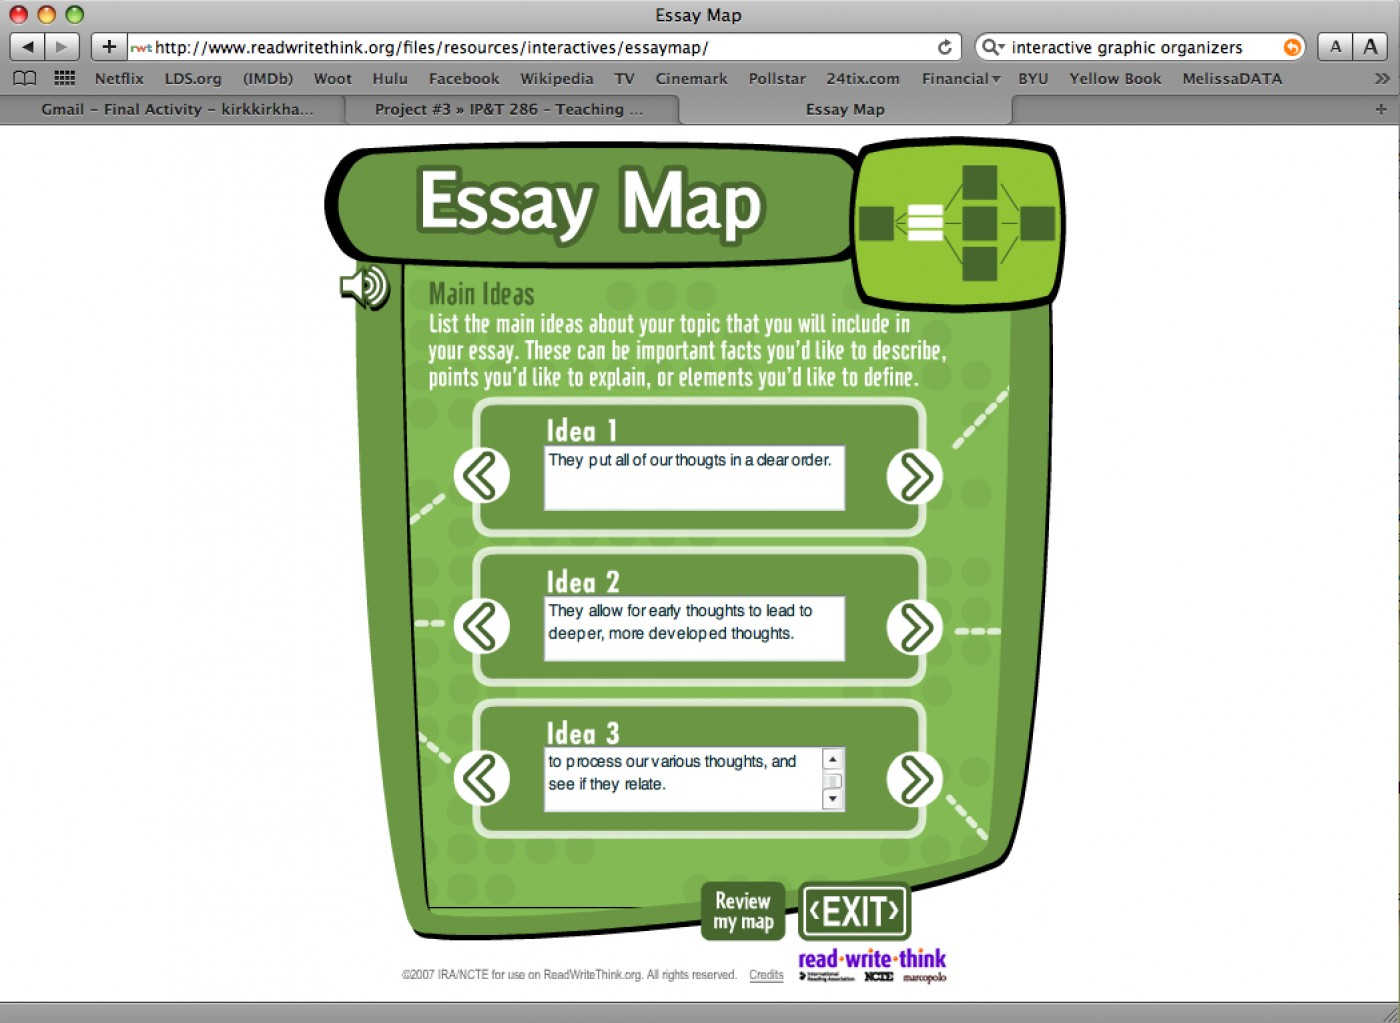 022 Essay Map Go3 Formidable Online Mind Example 1400